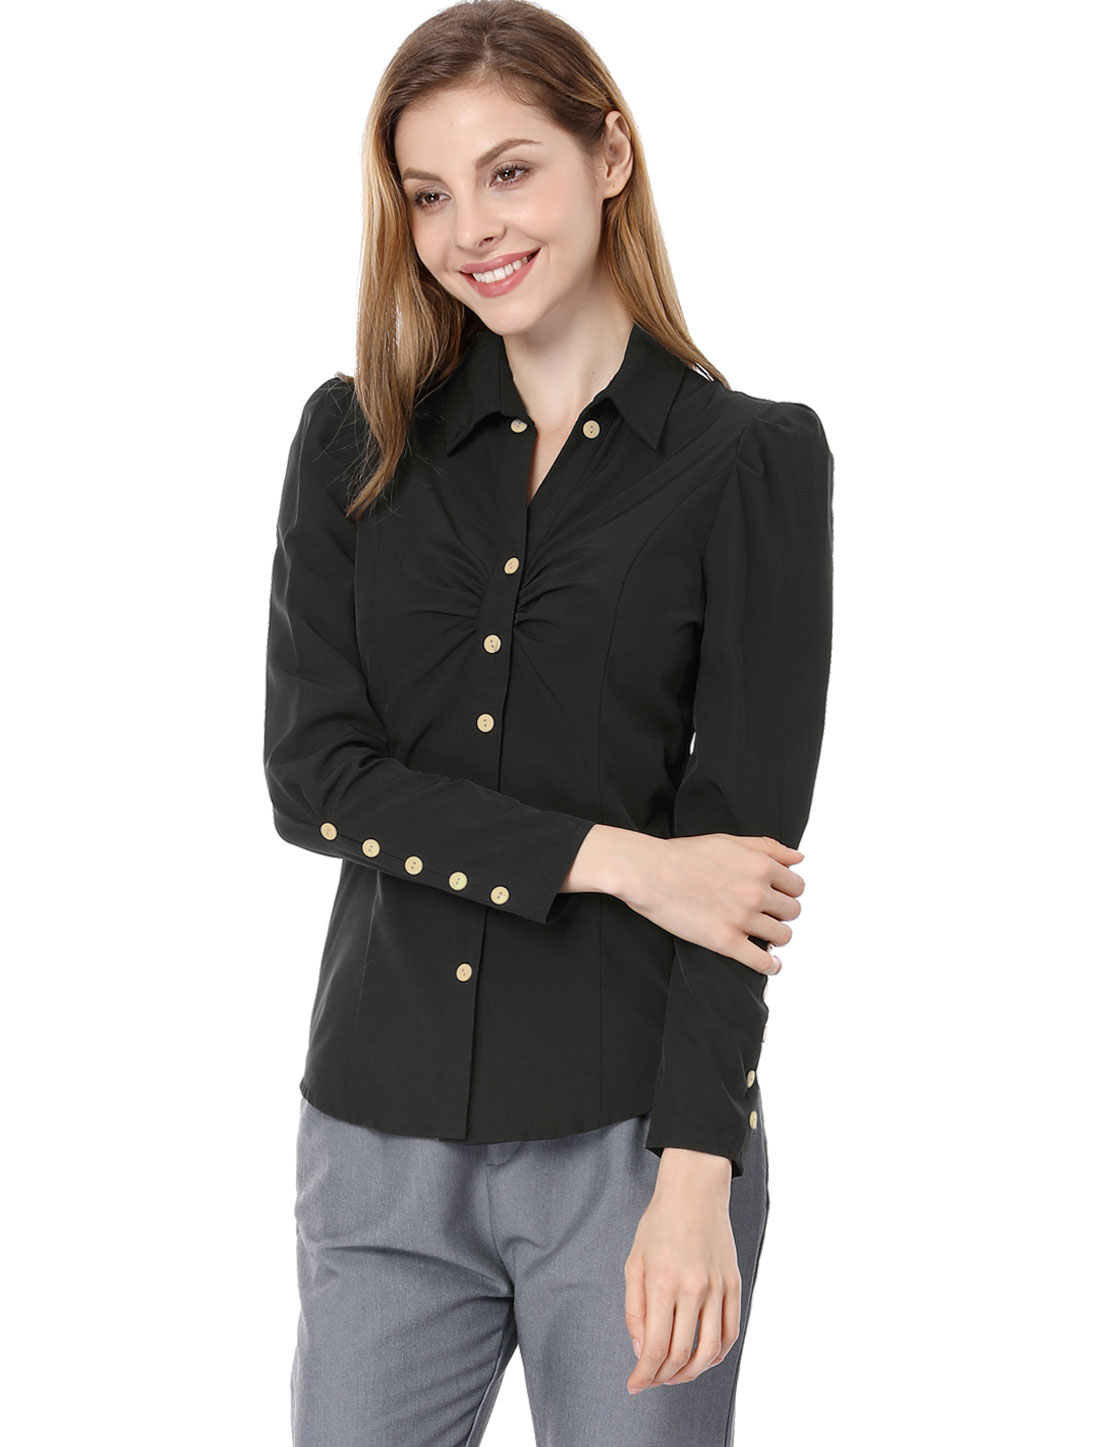 Women Long Sleeve Single Breasted Casual Shirt Black S